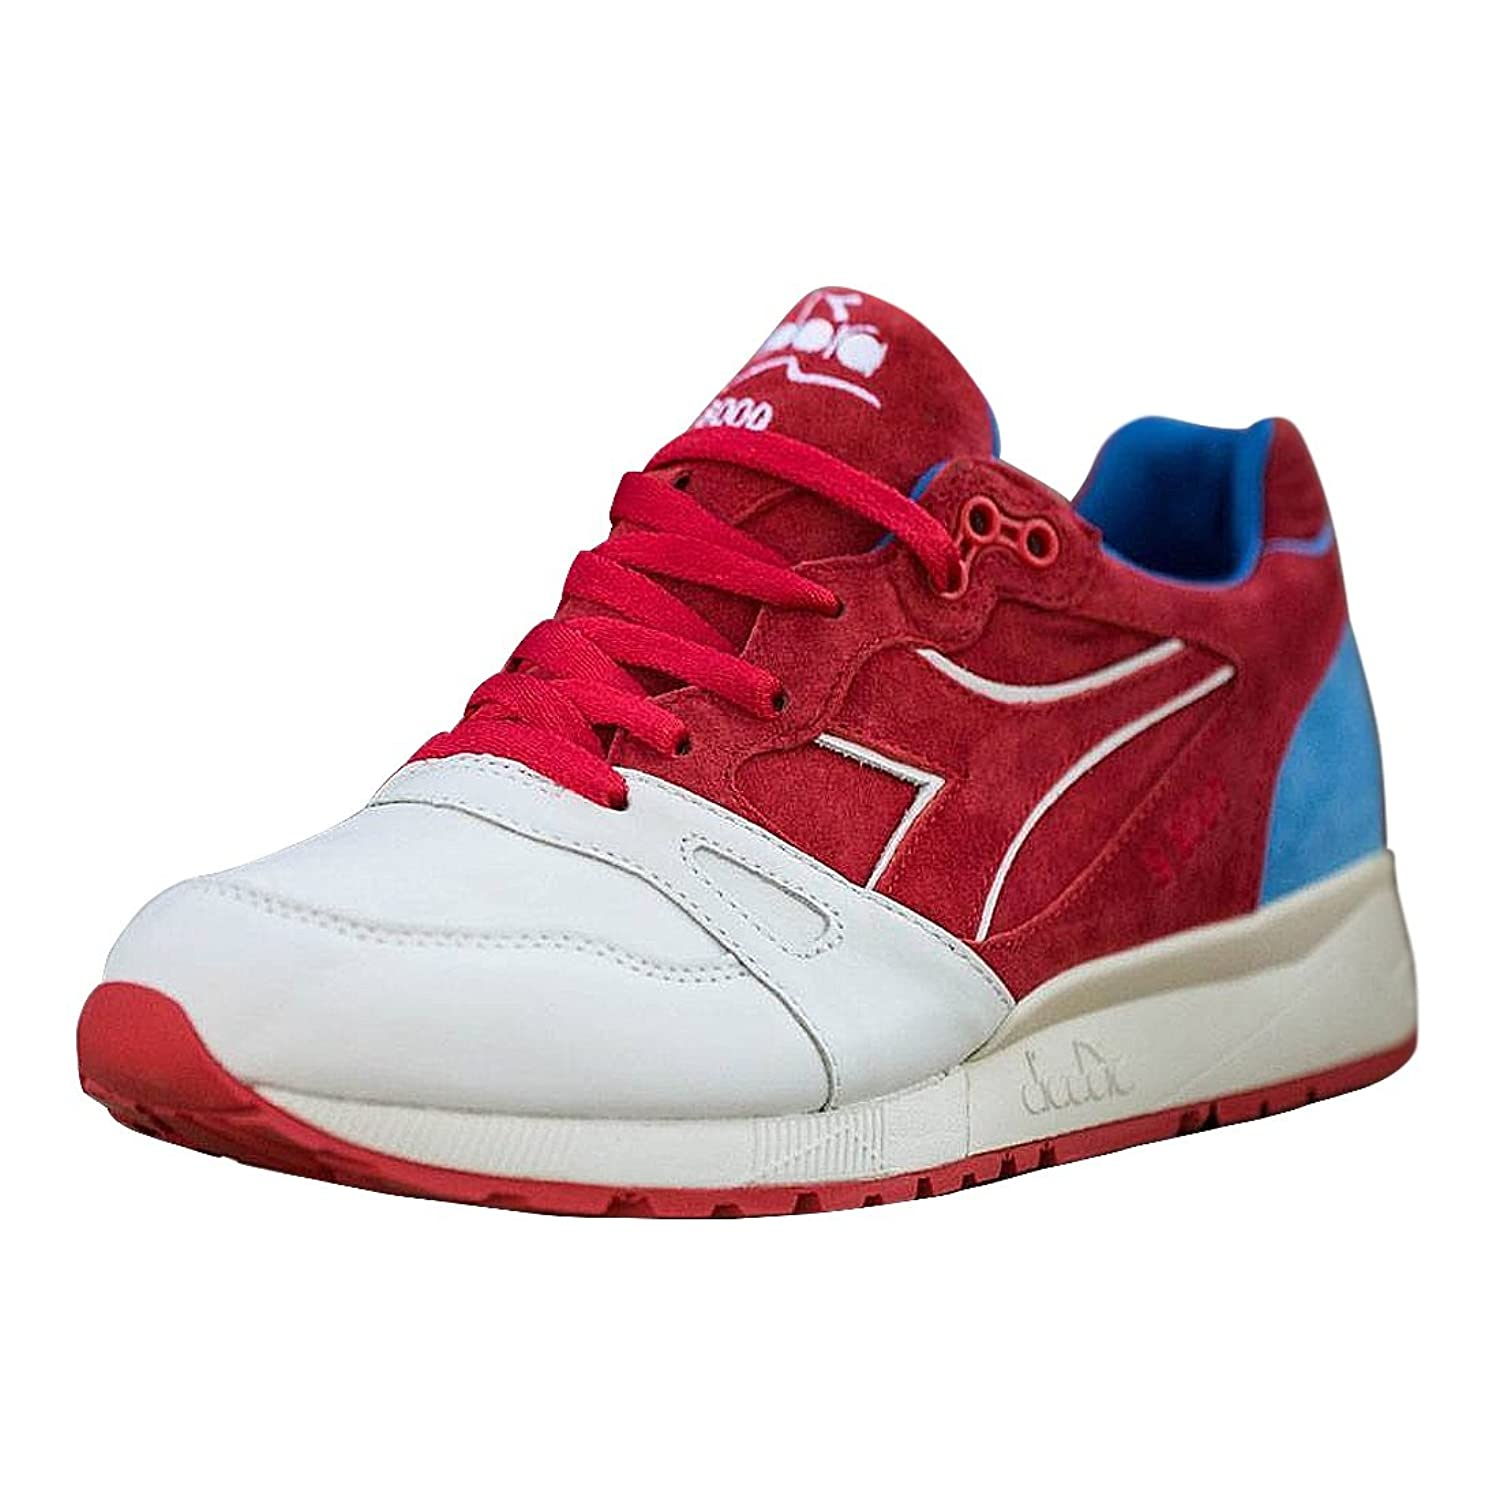 huge discount 8593b 909bf Diadora Bait x x DreamWorks Men S8000 Where is Wally (Where is Waldo)